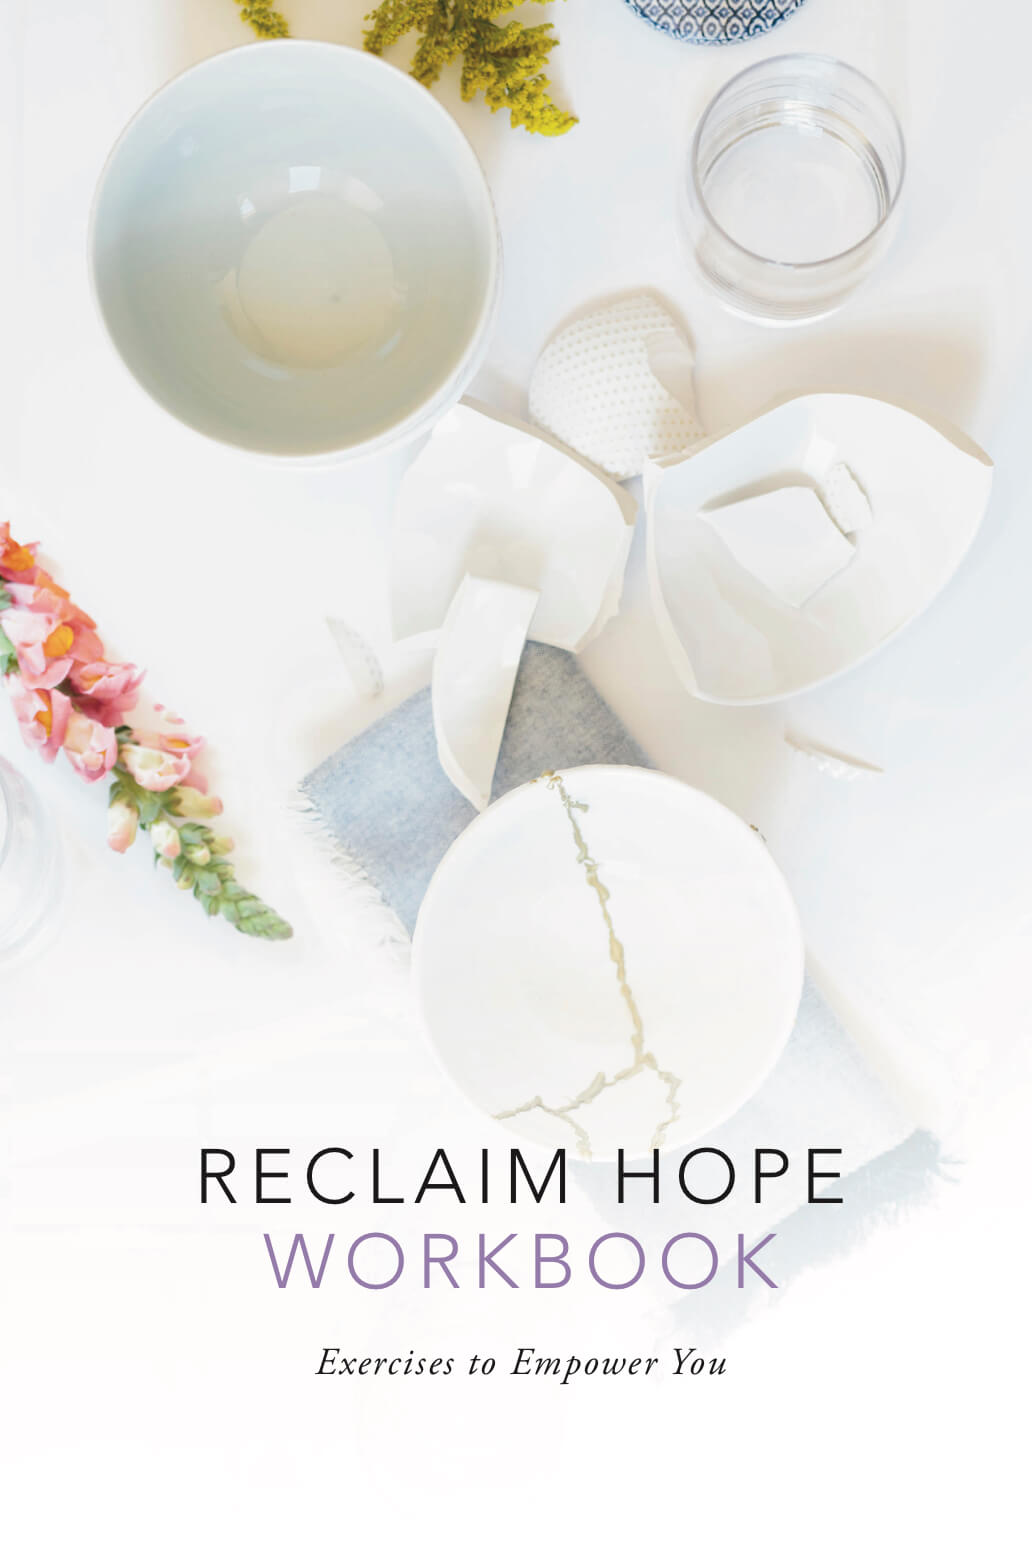 Reclaim Hope Workbook